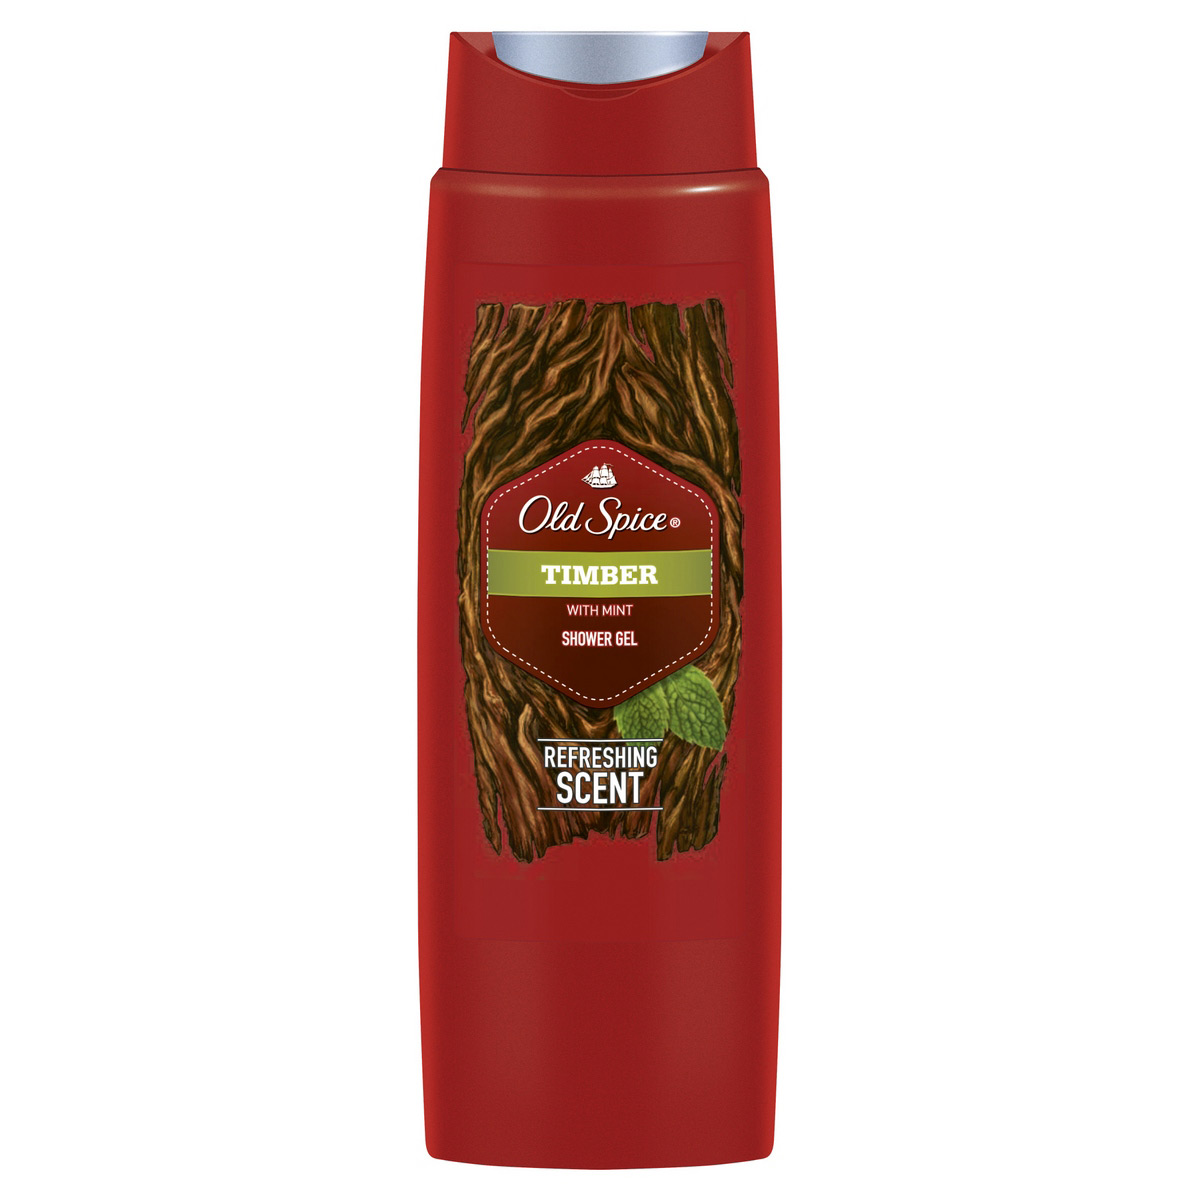 OLD SPICE Гель для душа Timber 25 0мл ahmed mohammed non timber forest products and food security